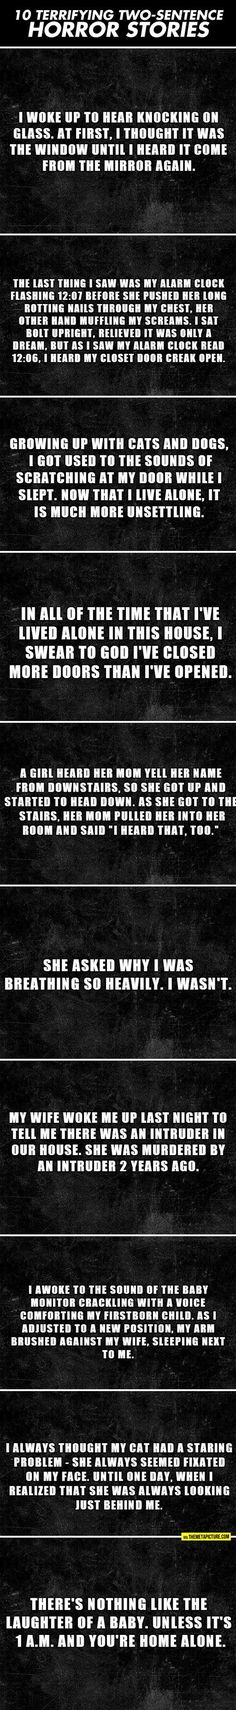 Scary Two Sentence Horror Stories